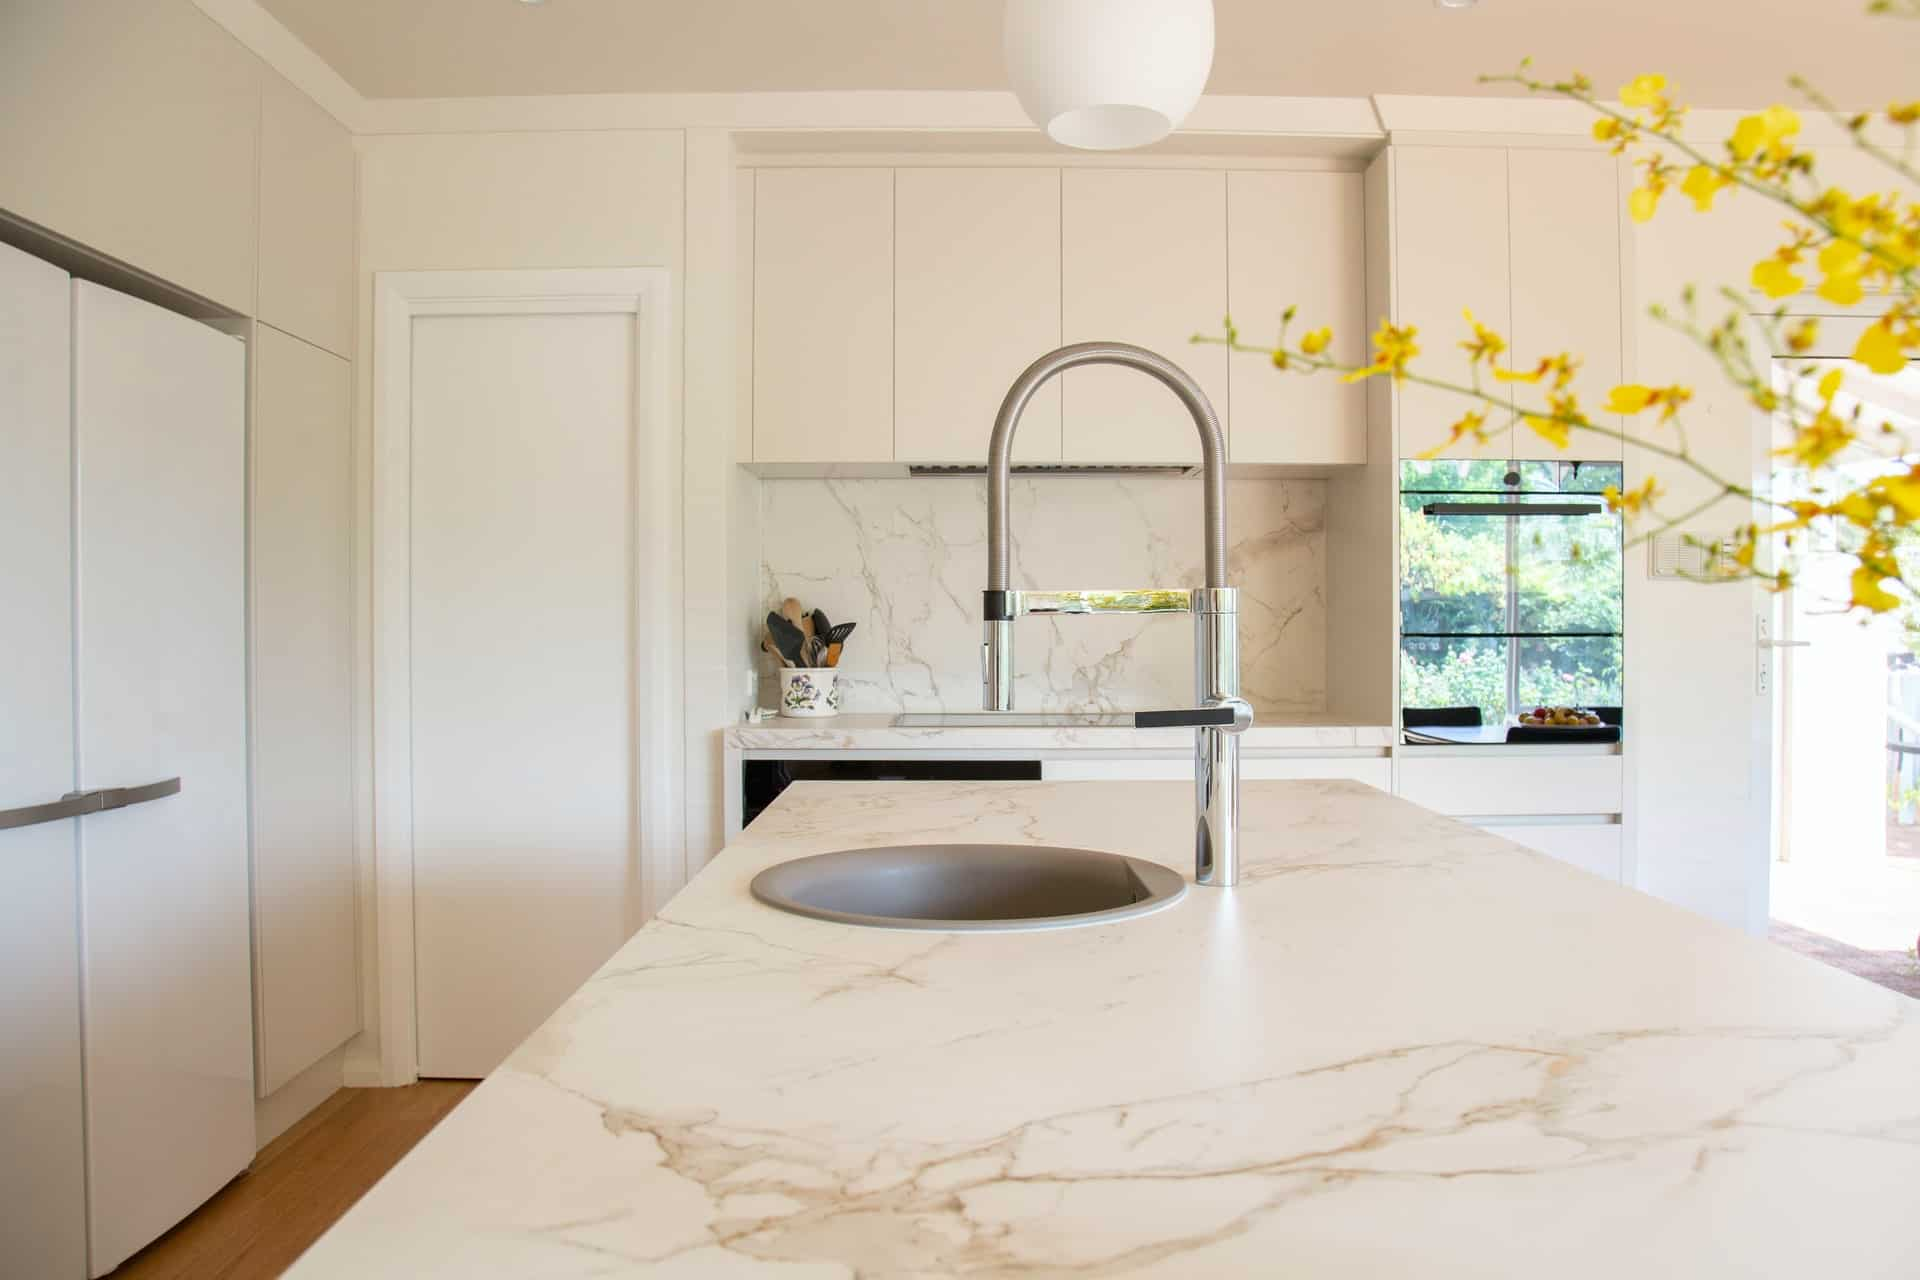 pull down kitchen faucet on a marble countertop in a kitchen